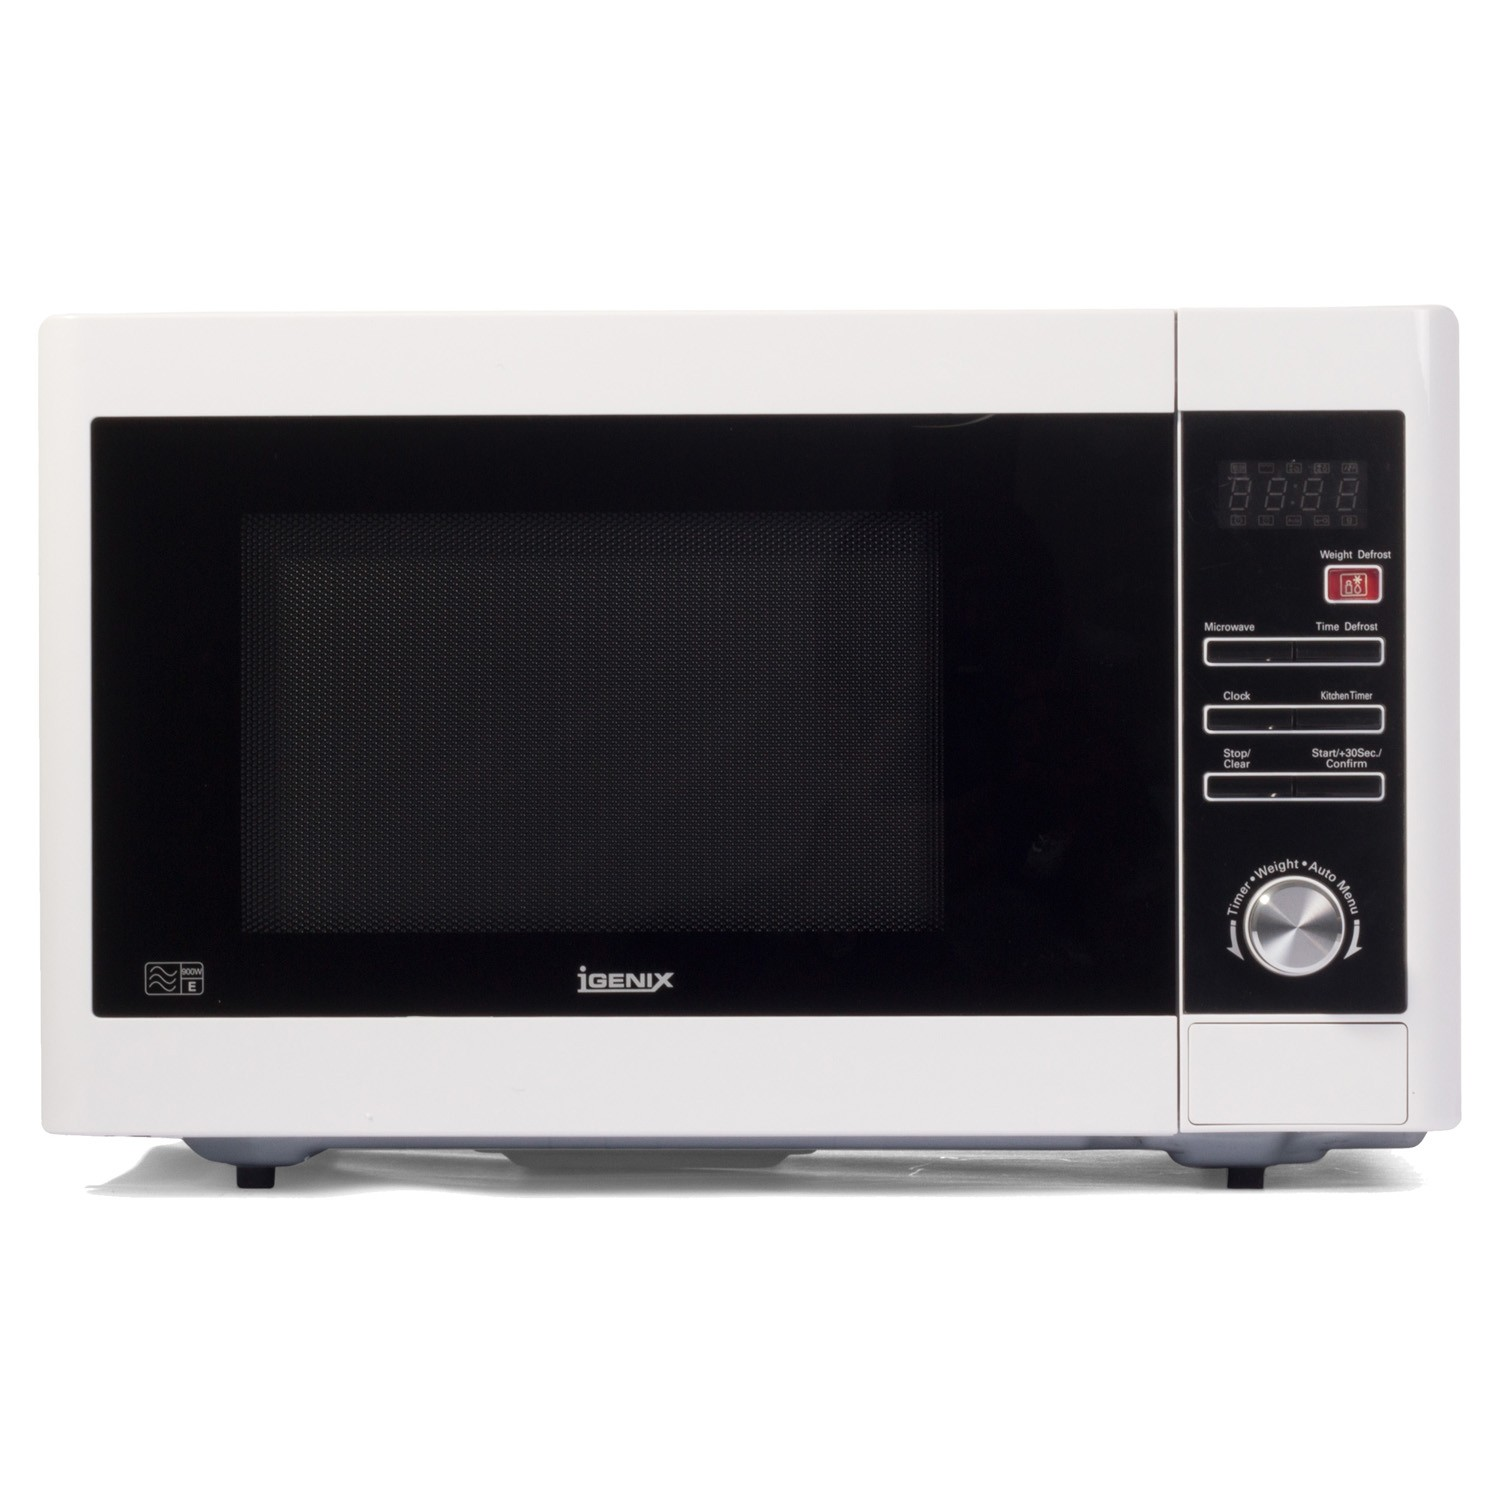 igenix 900w digital microwave white leekes. Black Bedroom Furniture Sets. Home Design Ideas